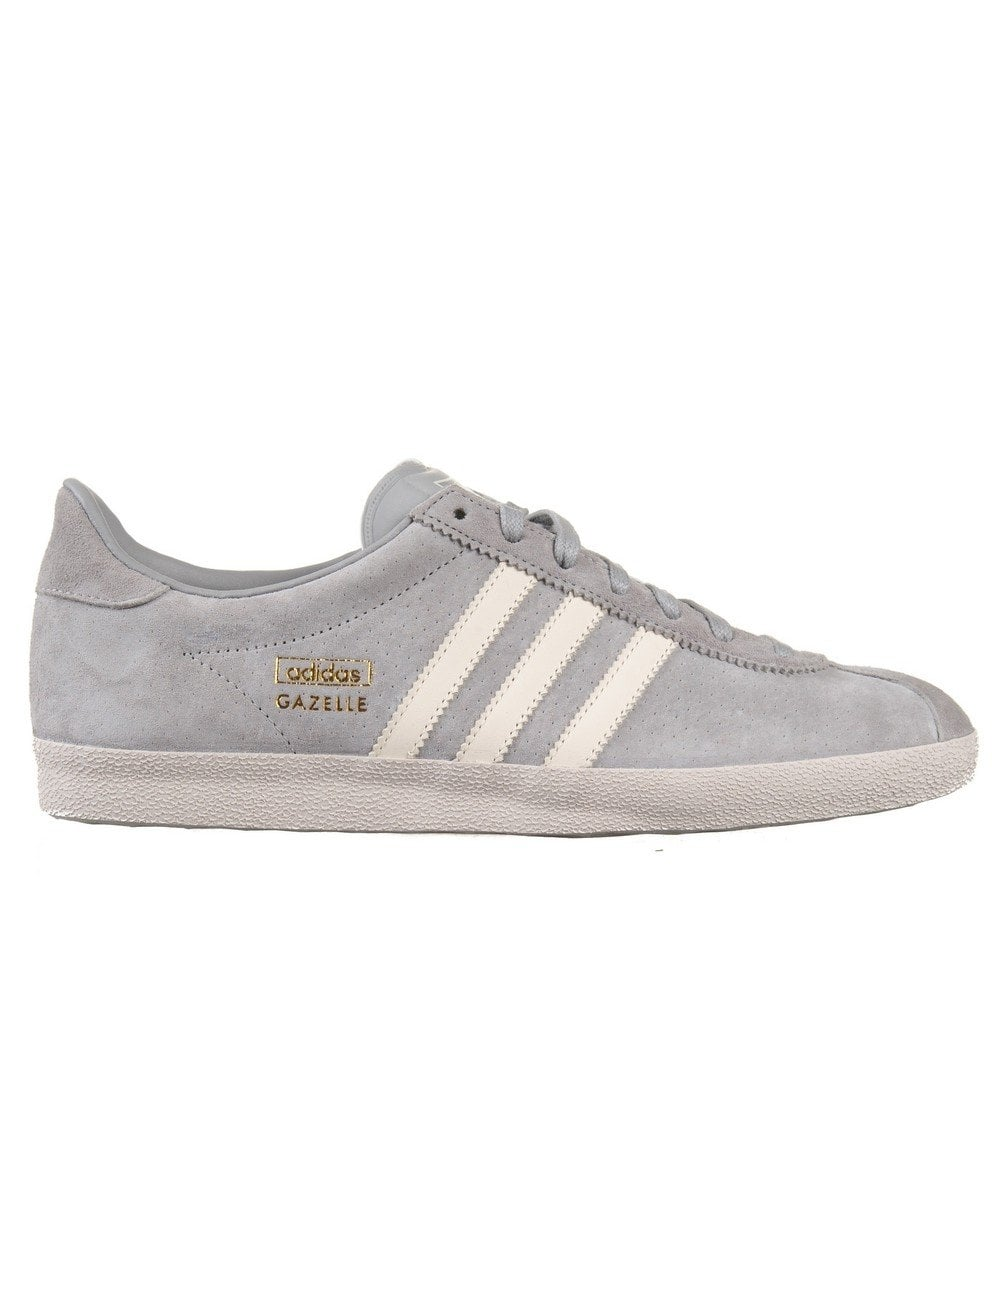 Adidas Originals Gazelle OG Shoes - MGH Solid Grey - Footwear from ... 88b6463c8